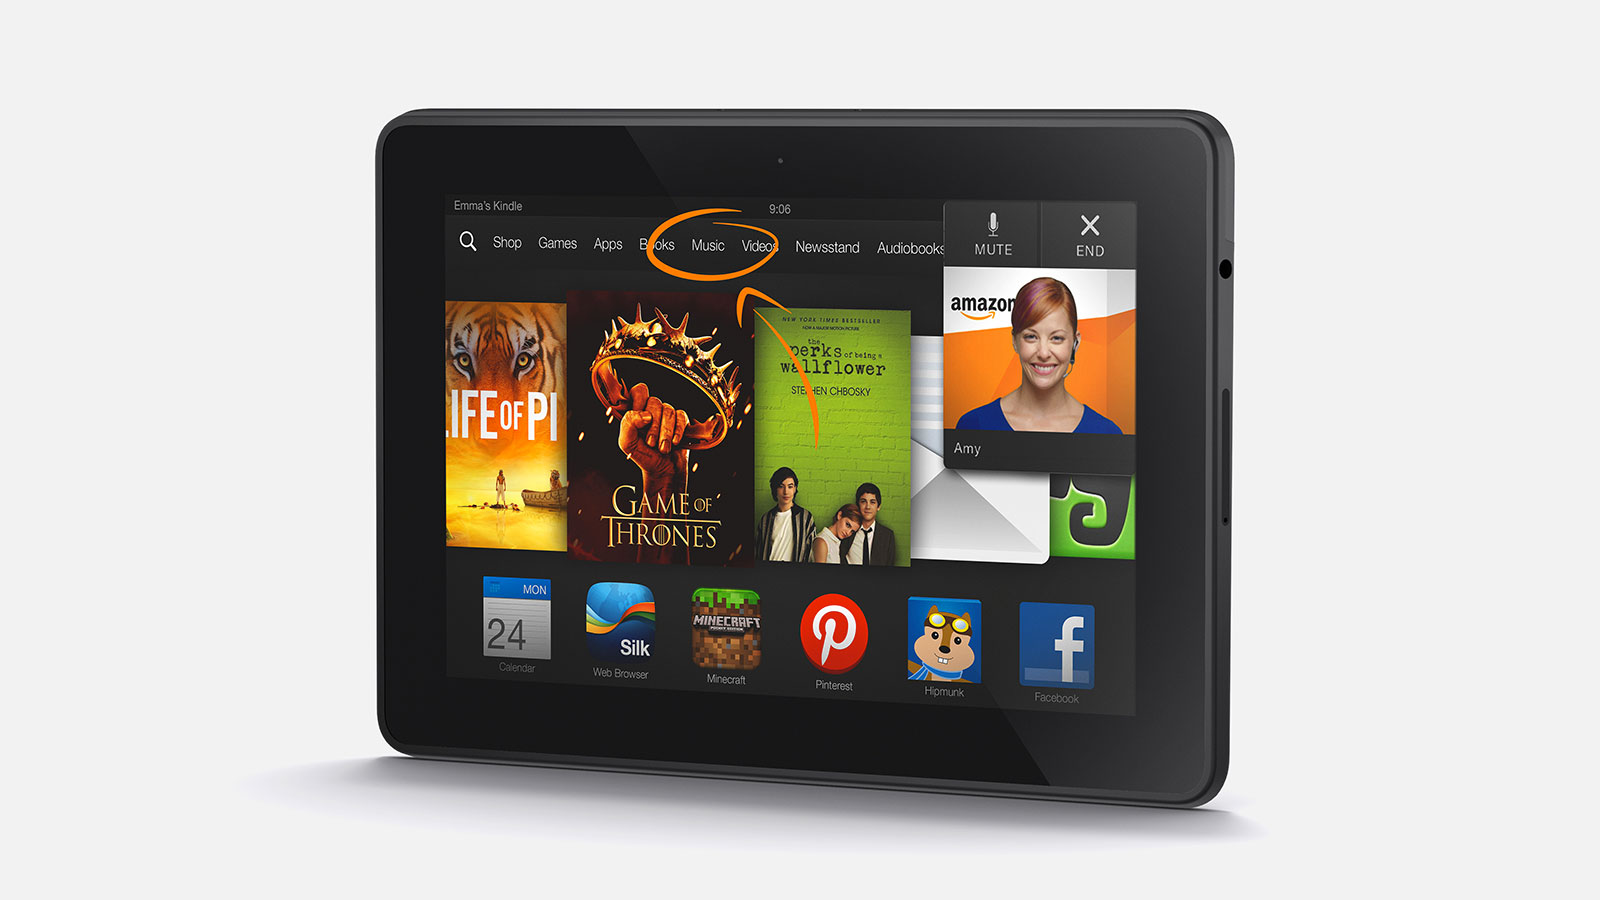 Amazon kindle 3 and kindle dx review and news with fire 1600x900